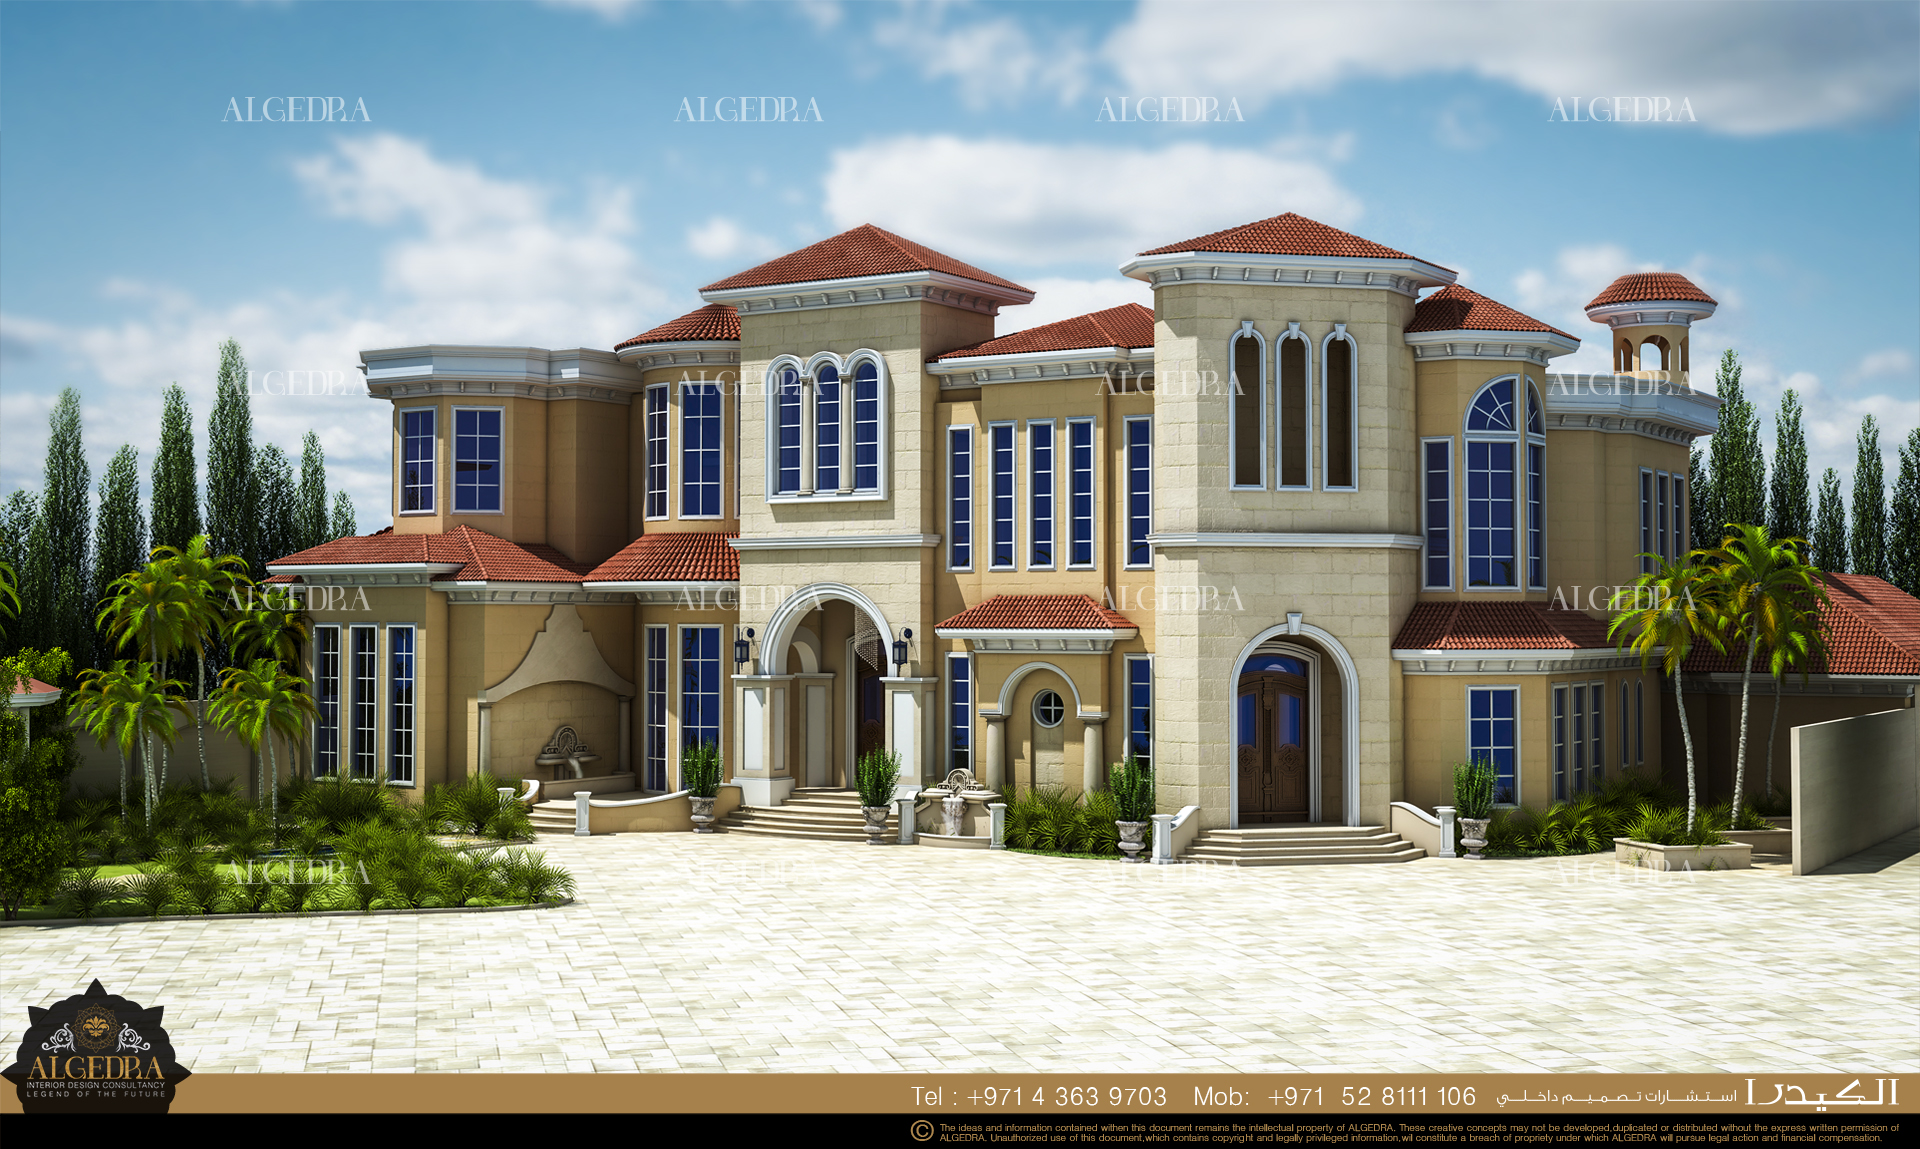 Villa exterior design by algedra interior design at for Villa exterior design ideas